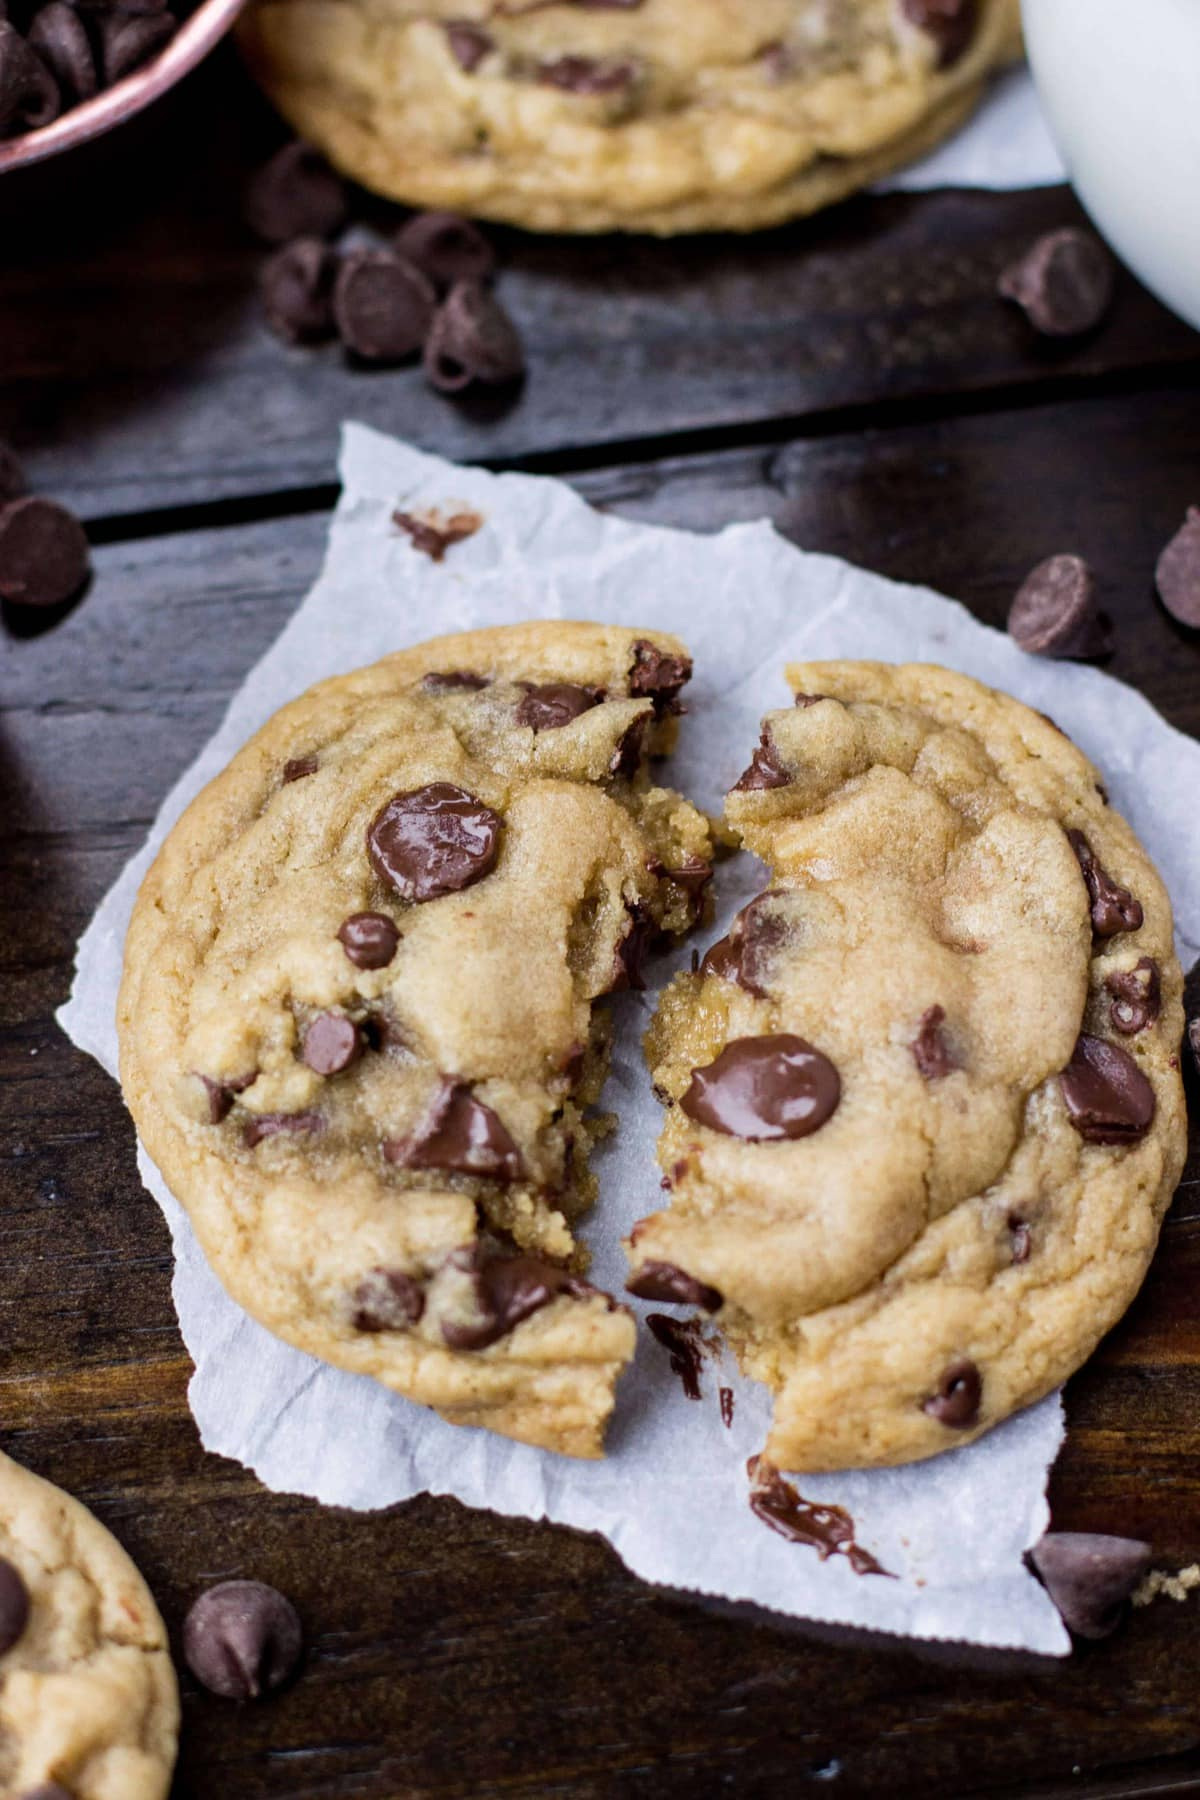 Worst chocolate chip cookie on parchment paper on a wood surface, broken in half